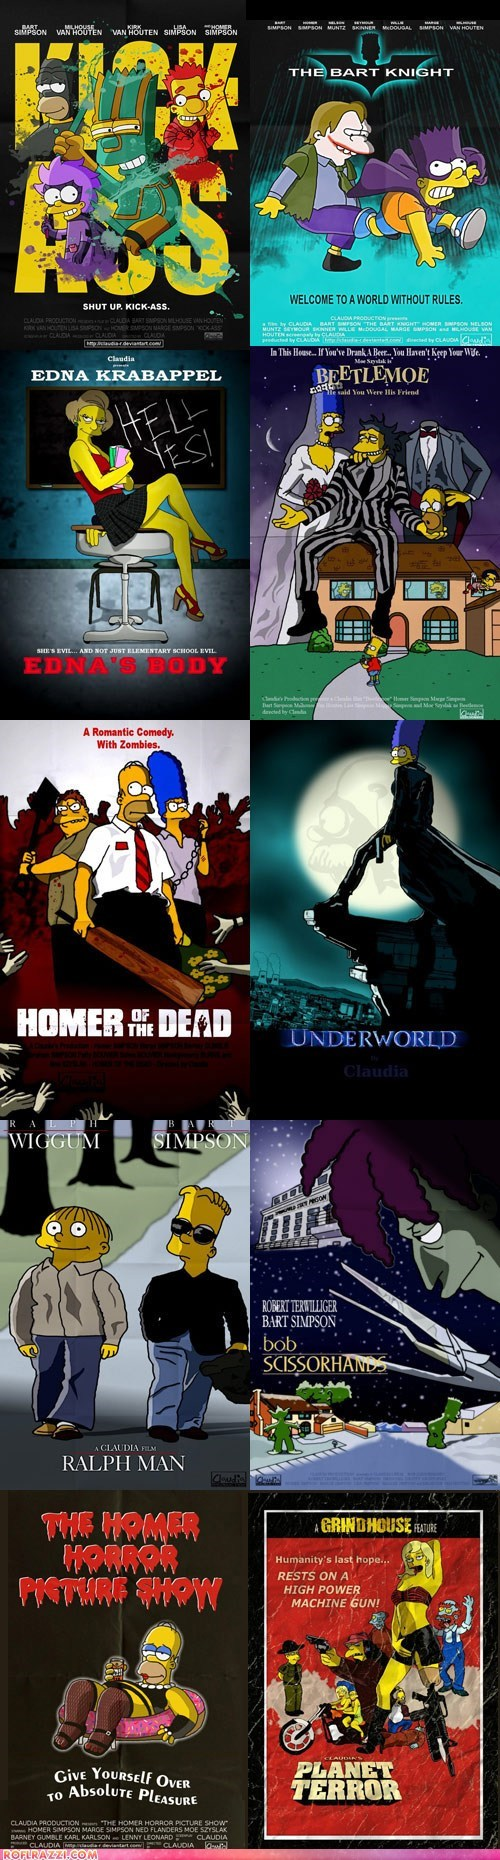 animation art awesome funny Hall of Fame Movie parody poster the simpsons TV - 5976050944